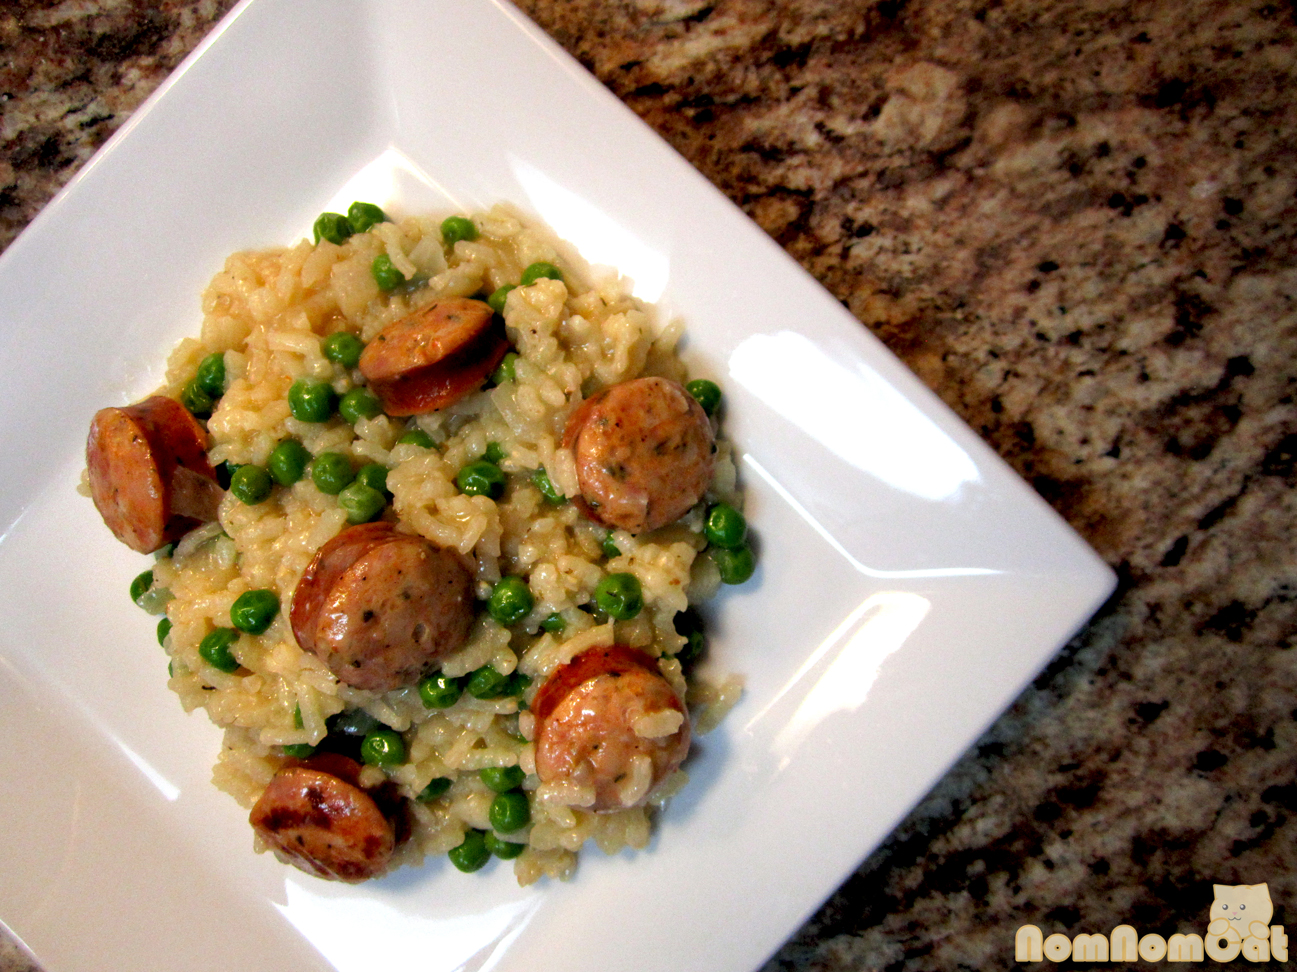 Risotto with Italian chicken sausage and English peas